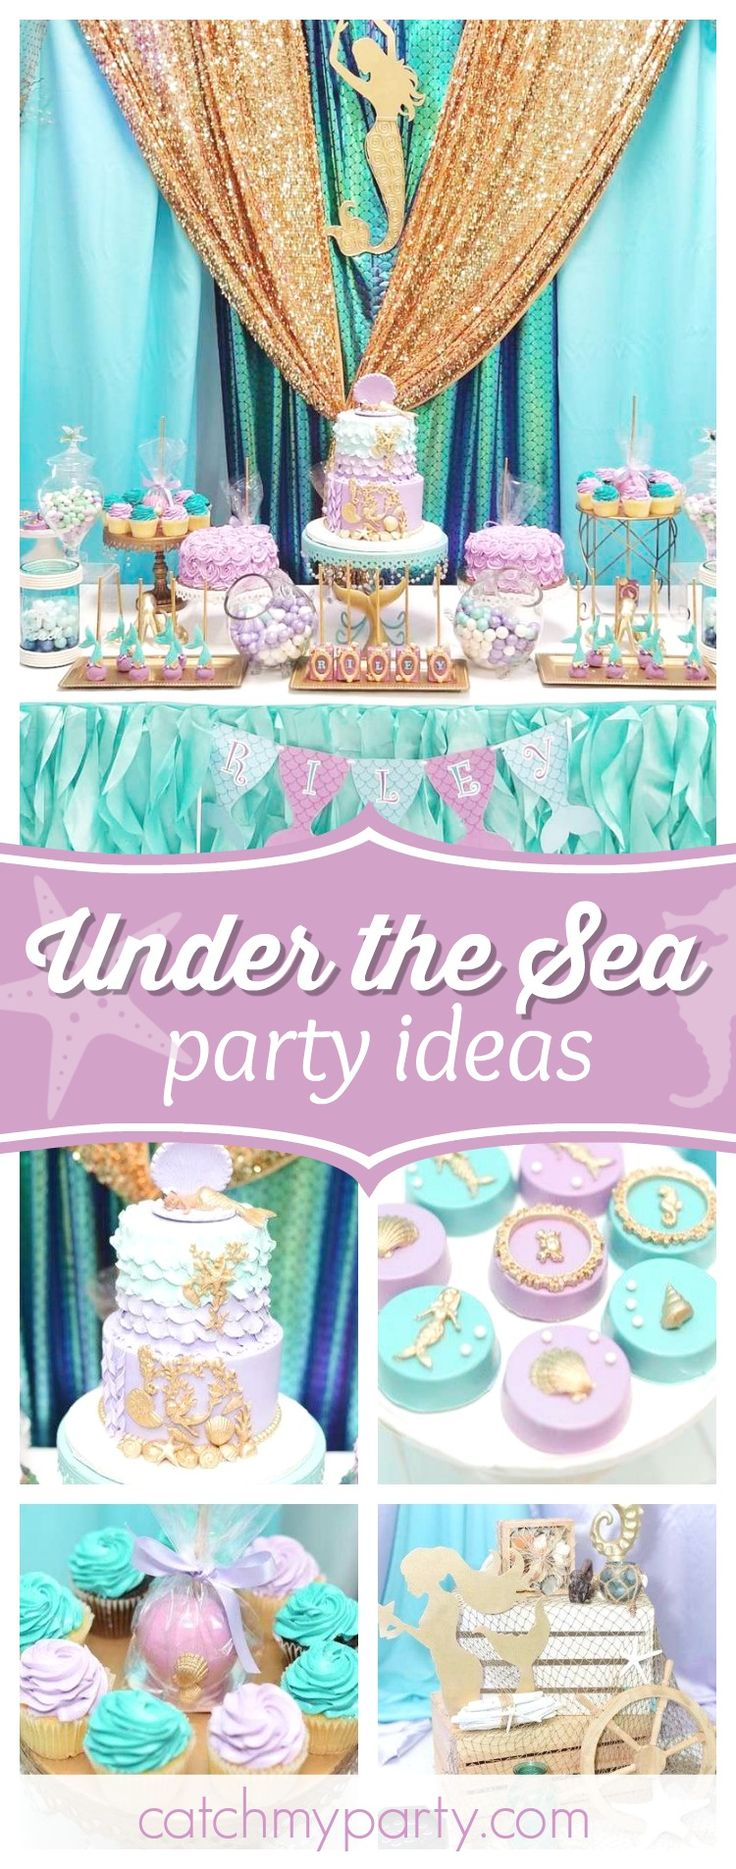 Take a look at this wonderful Under the Sea Baby Shower! The cake is amazing!! See more party ideas and share yours at CatchMyParty.com #partyideas #catchmyparty #underthesea #babyshower